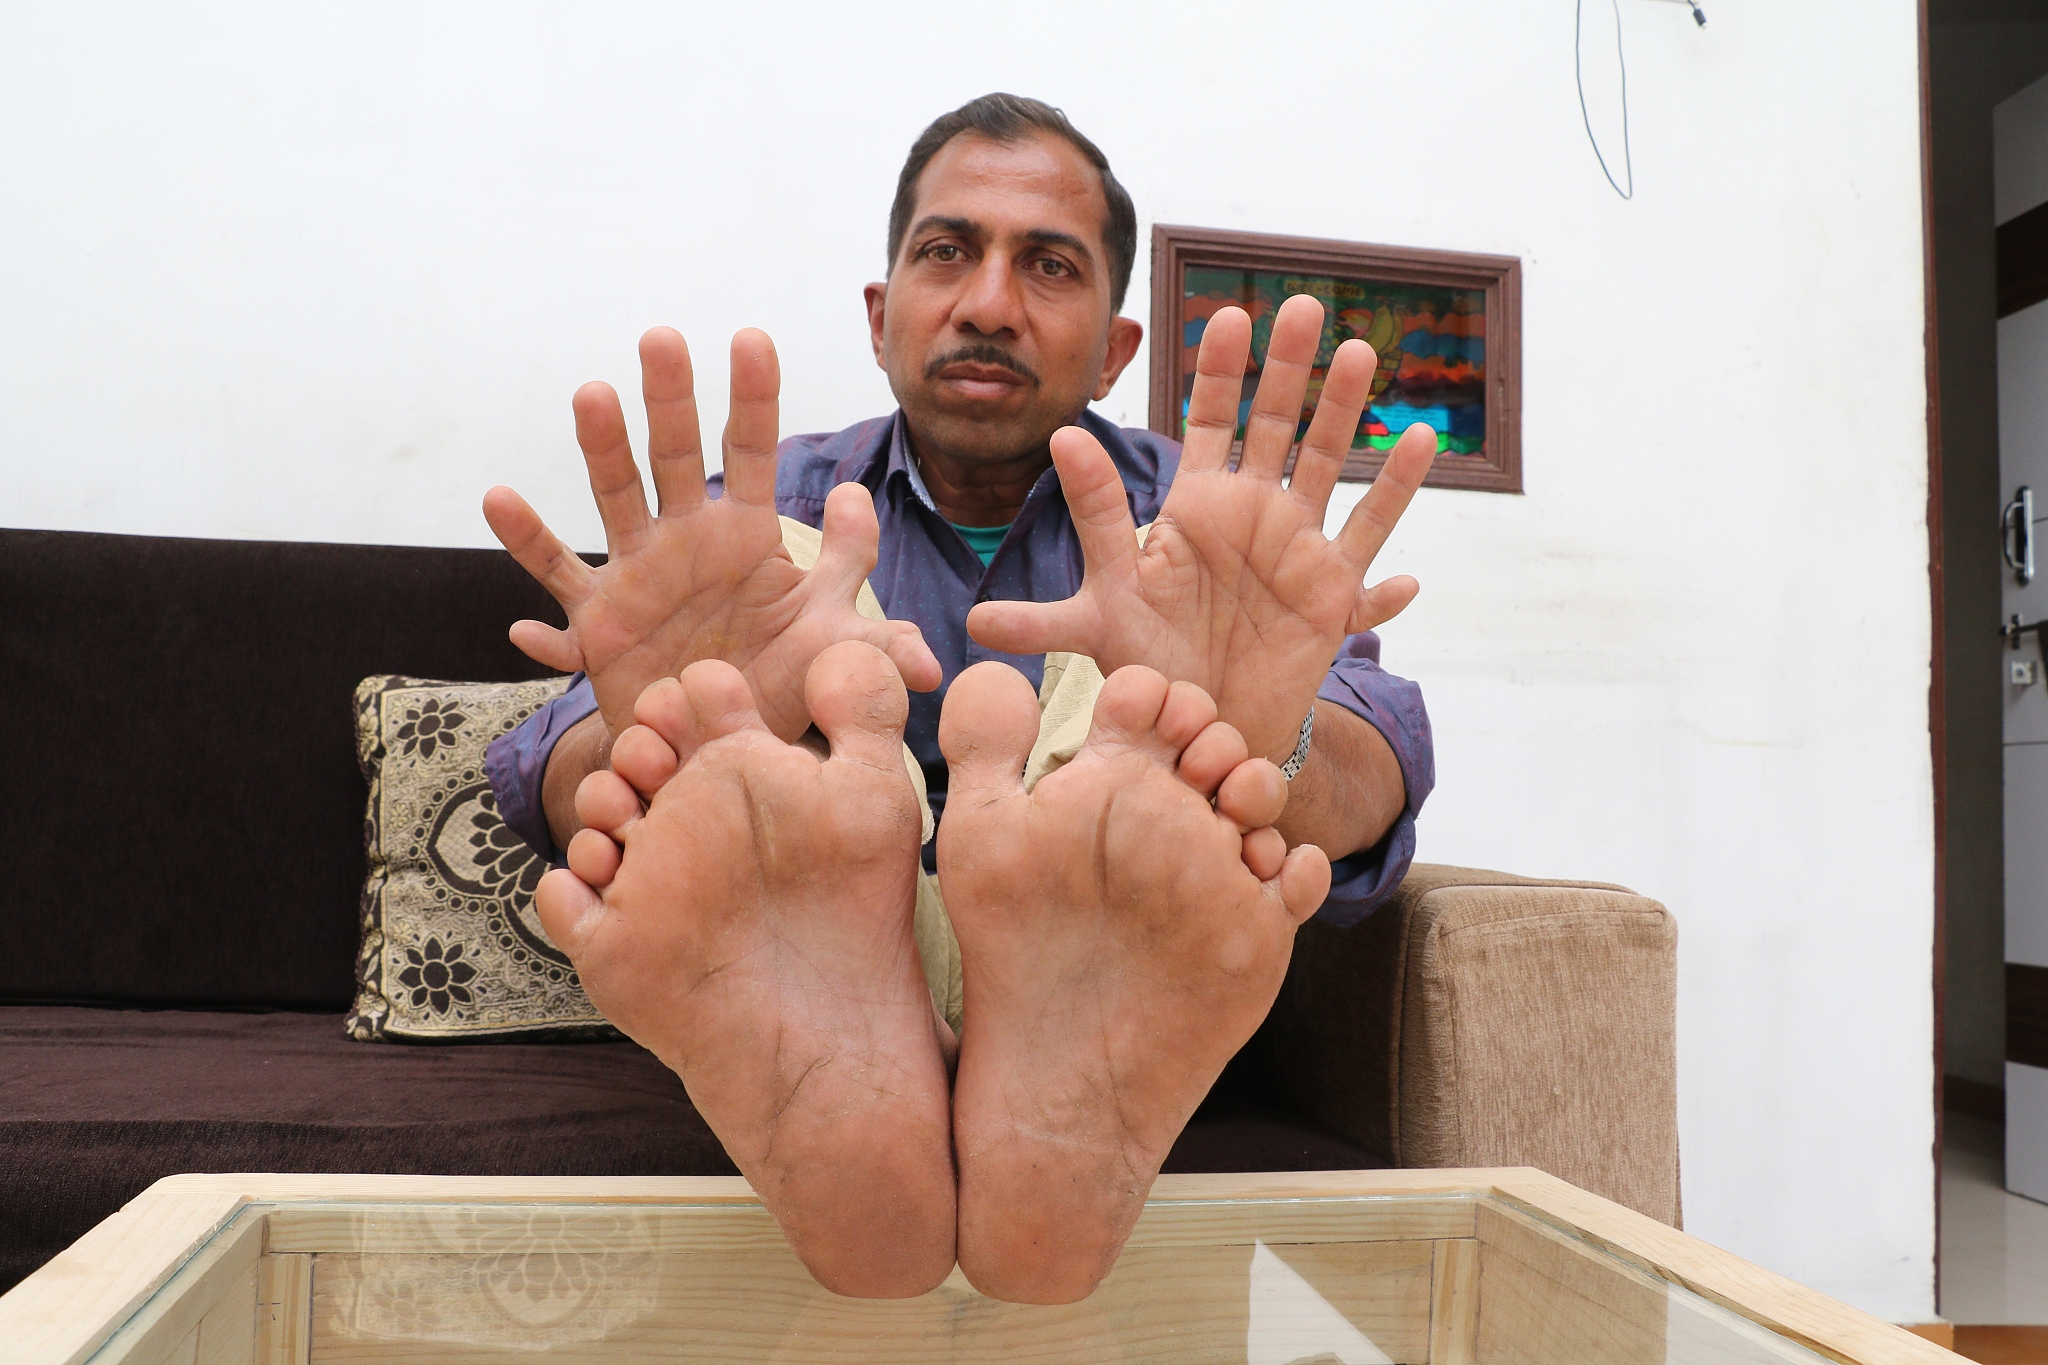 Indian man shows off world's most fingers and toes